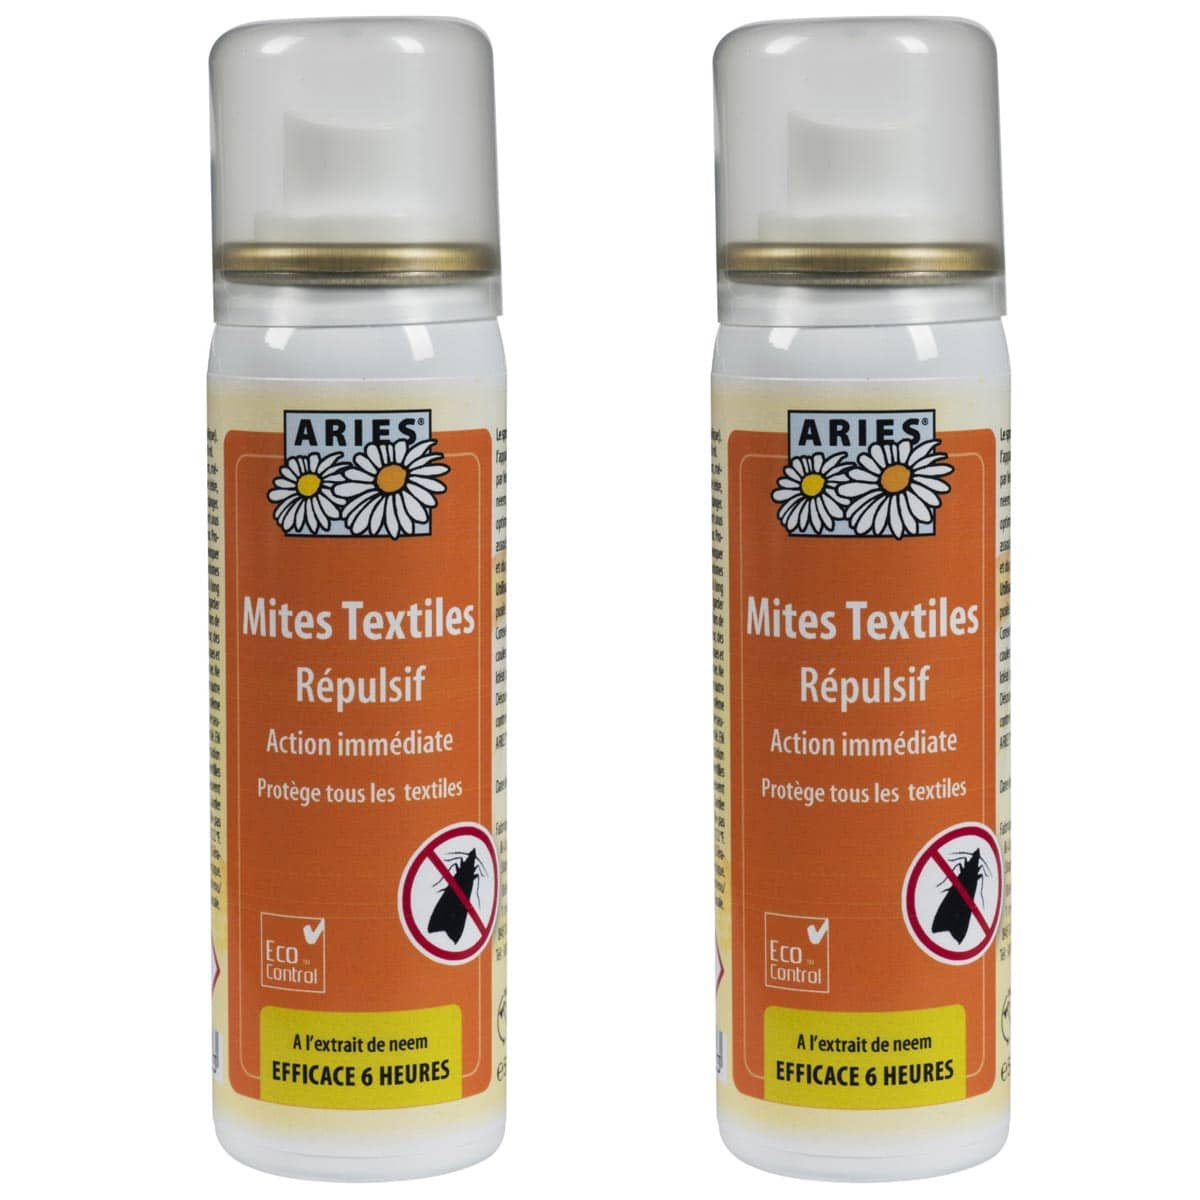 anti mites textiles spray 50ml lot de 2 traitement anti mites. Black Bedroom Furniture Sets. Home Design Ideas